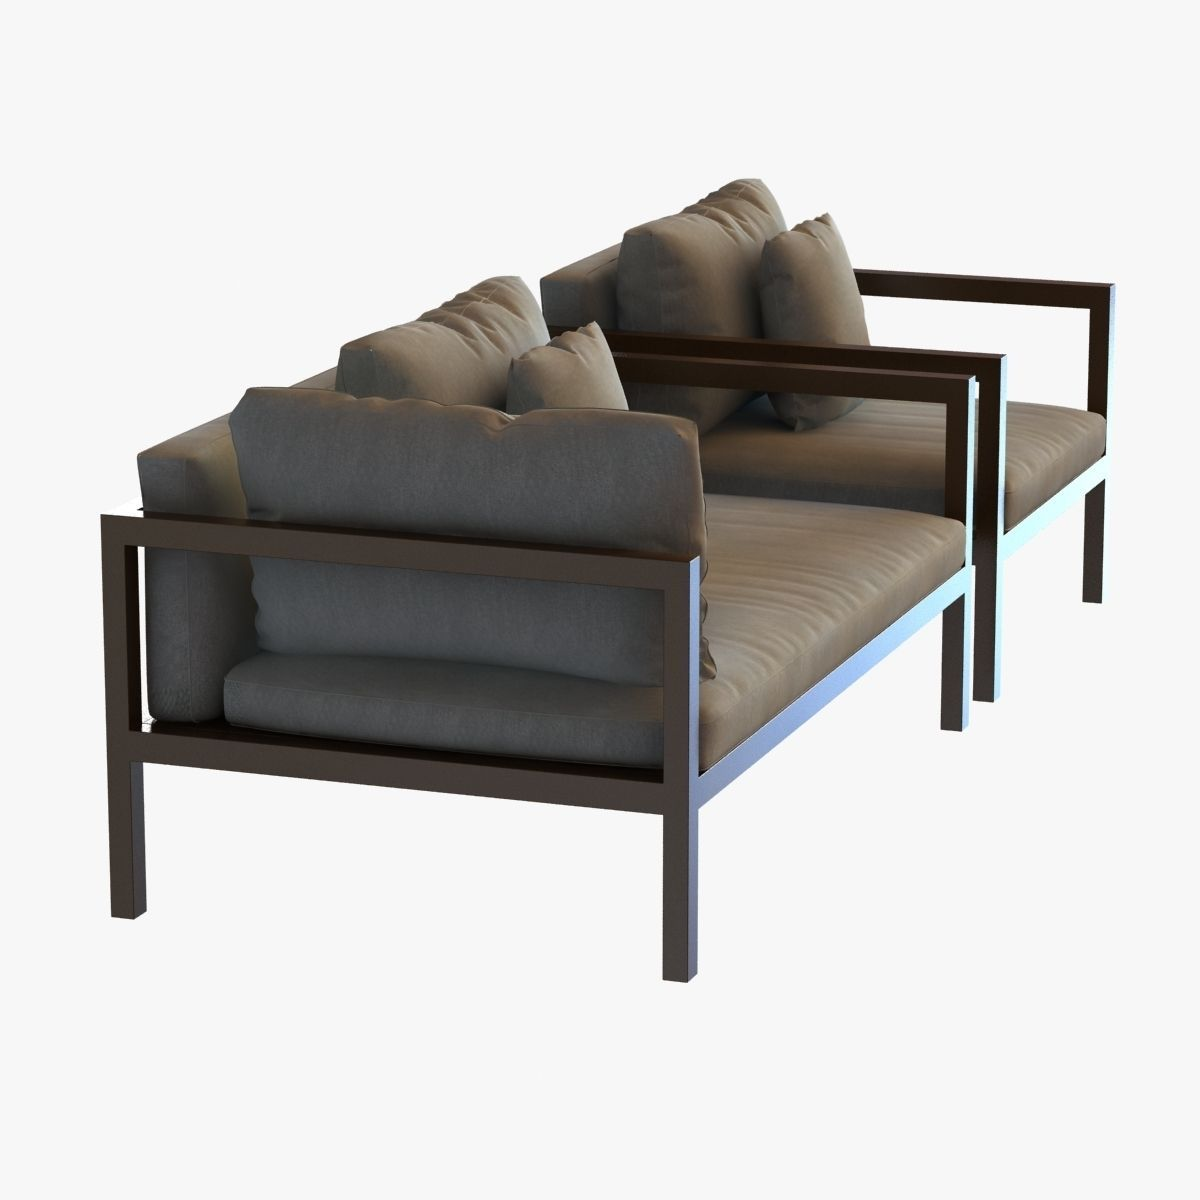 Kettal landscape sofa and chair 3d model max 3ds fbx for Sofa 3d model